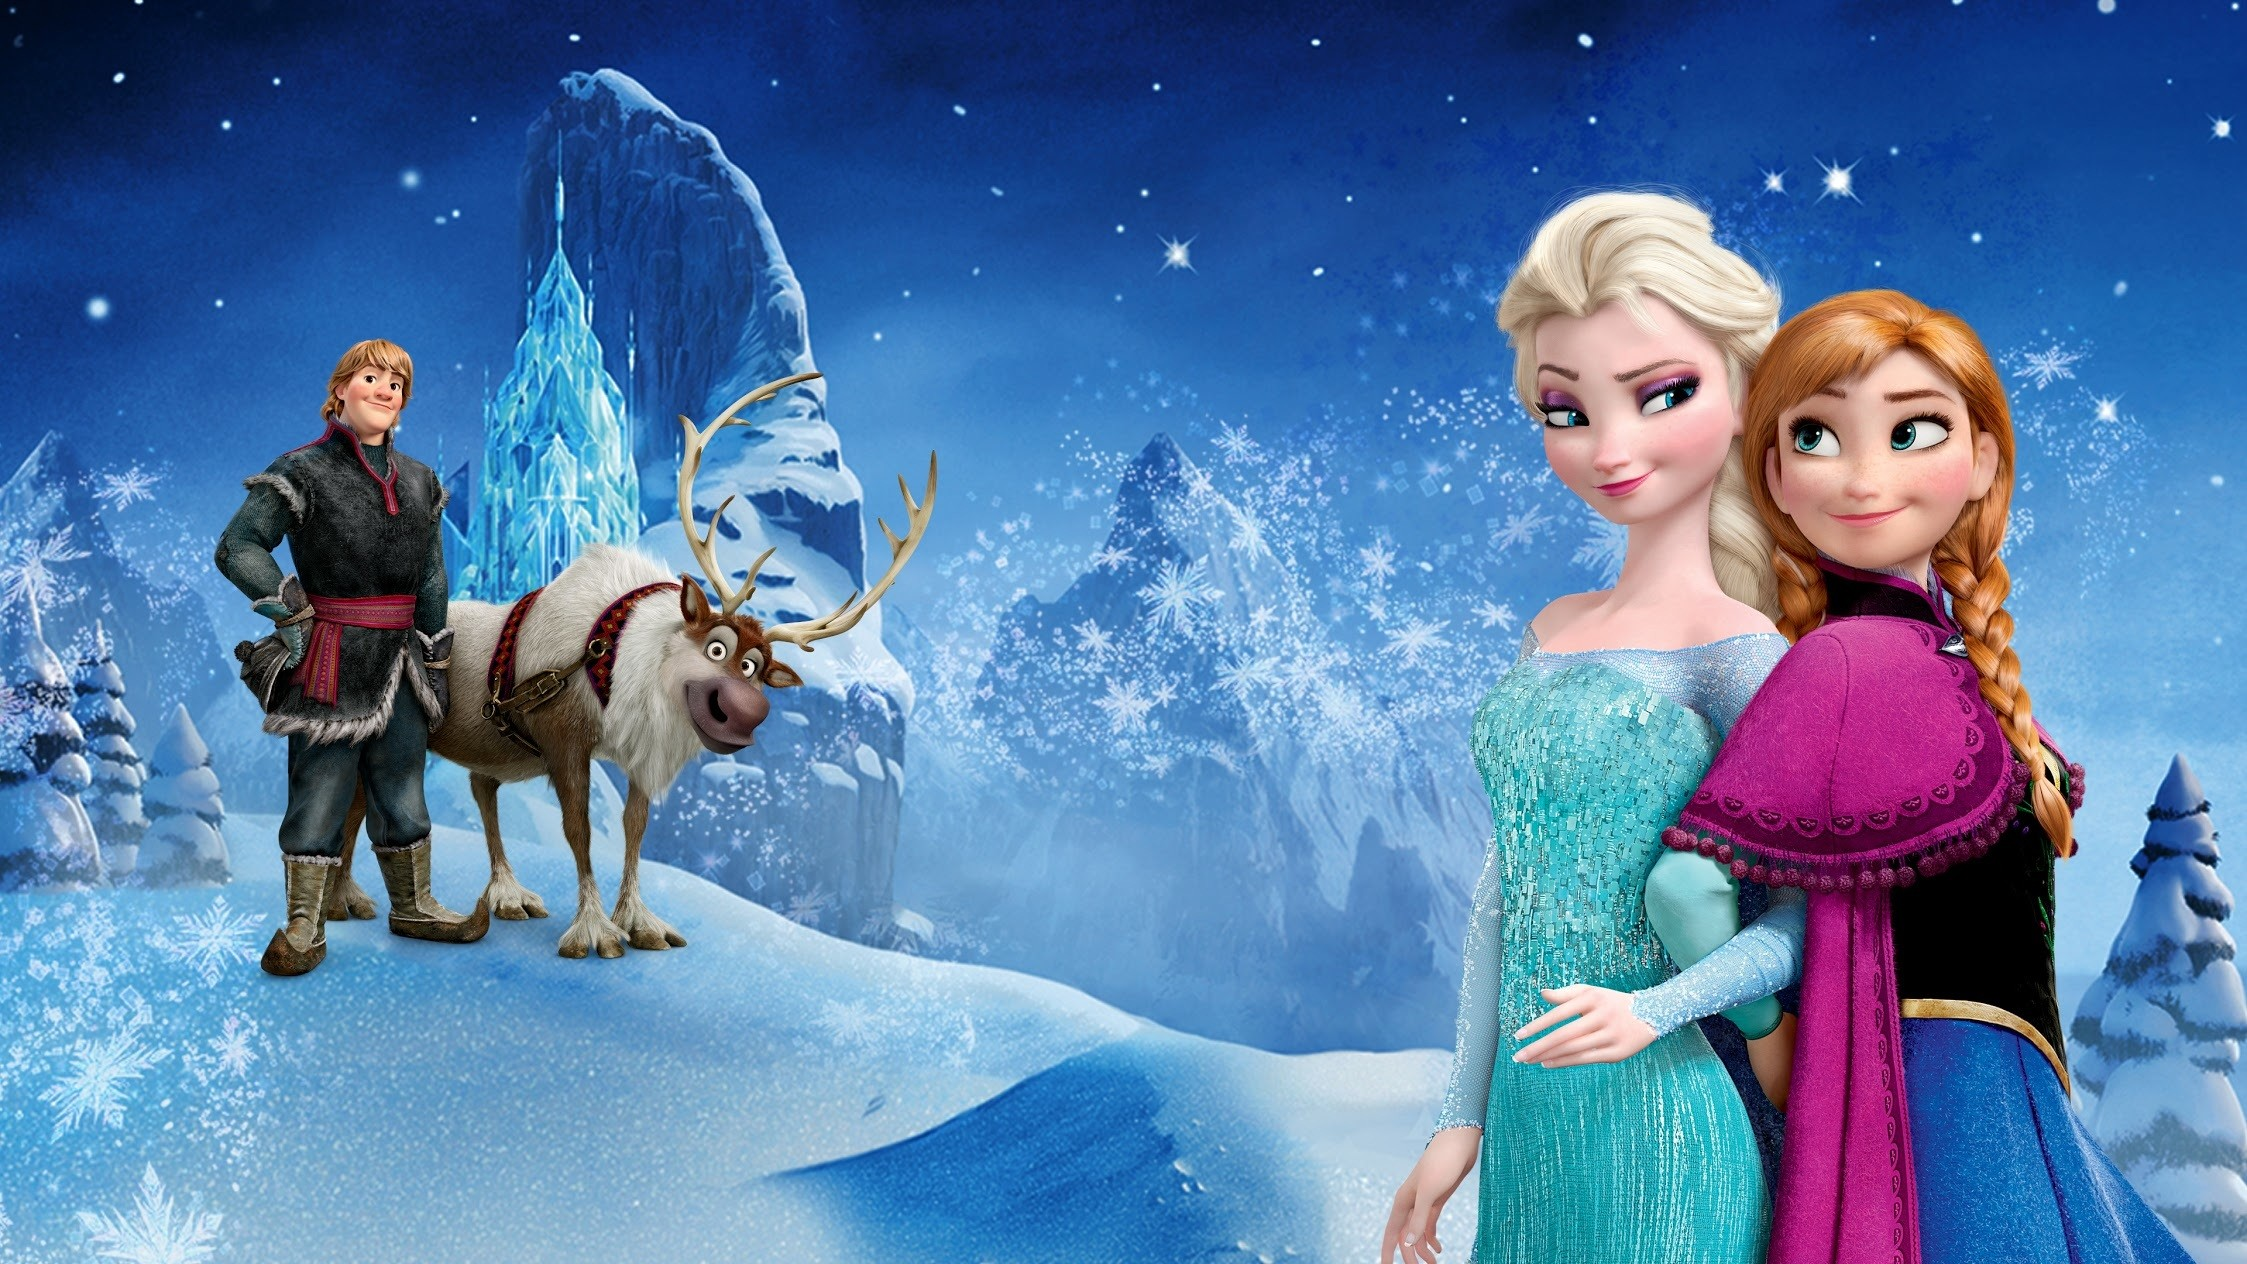 in the original plot of frozen elsa was a villain because some